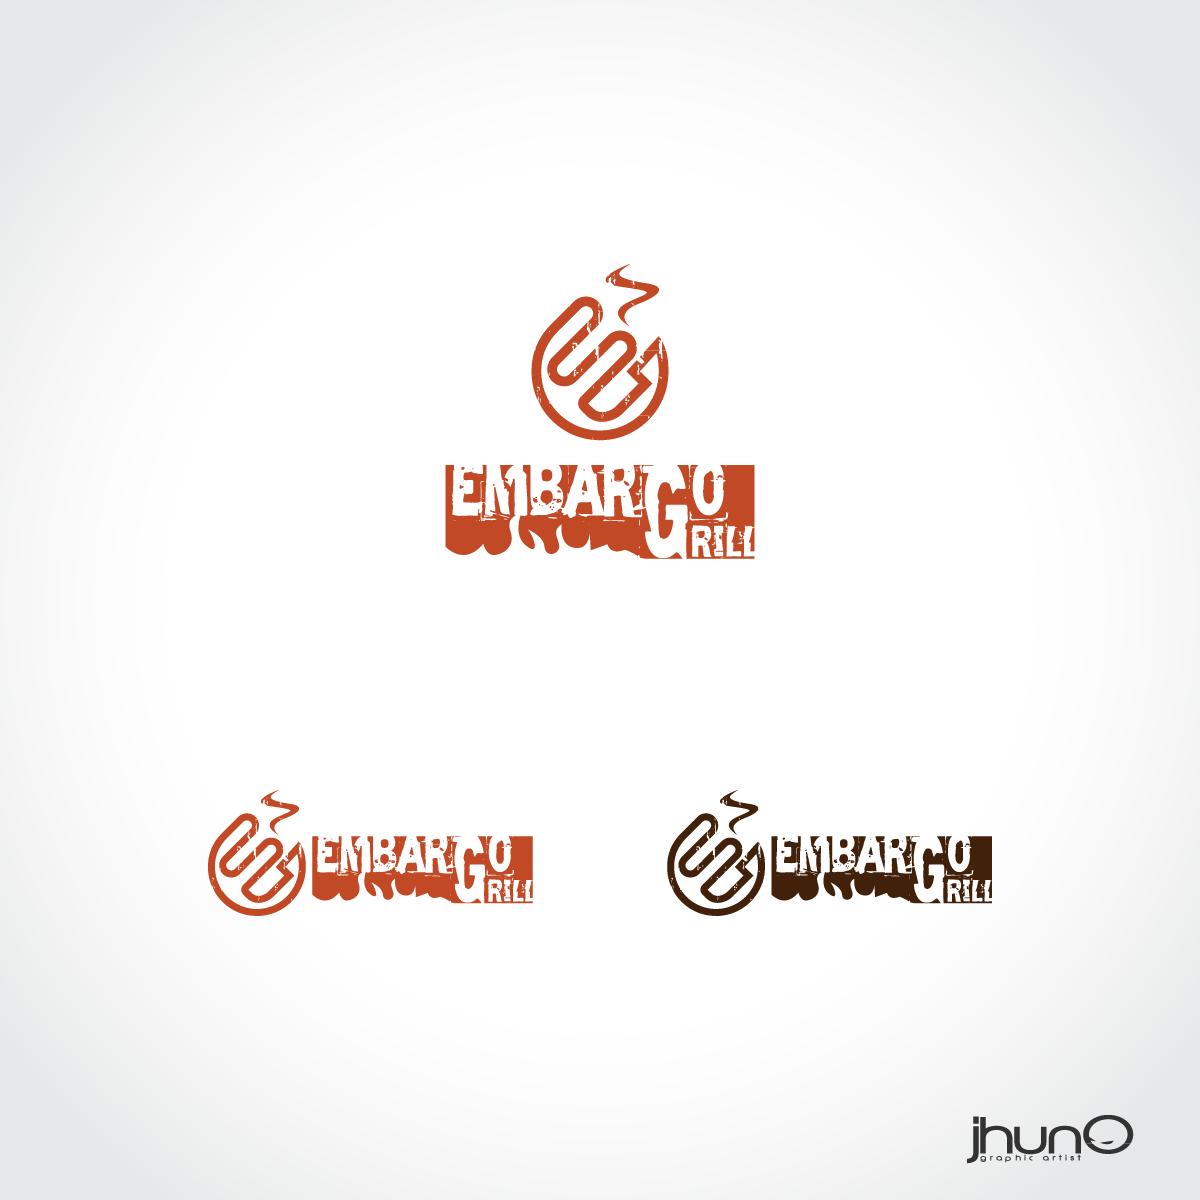 Logo Design by zesthar - Entry No. 60 in the Logo Design Contest Captivating Logo Design for Embargo Grill.